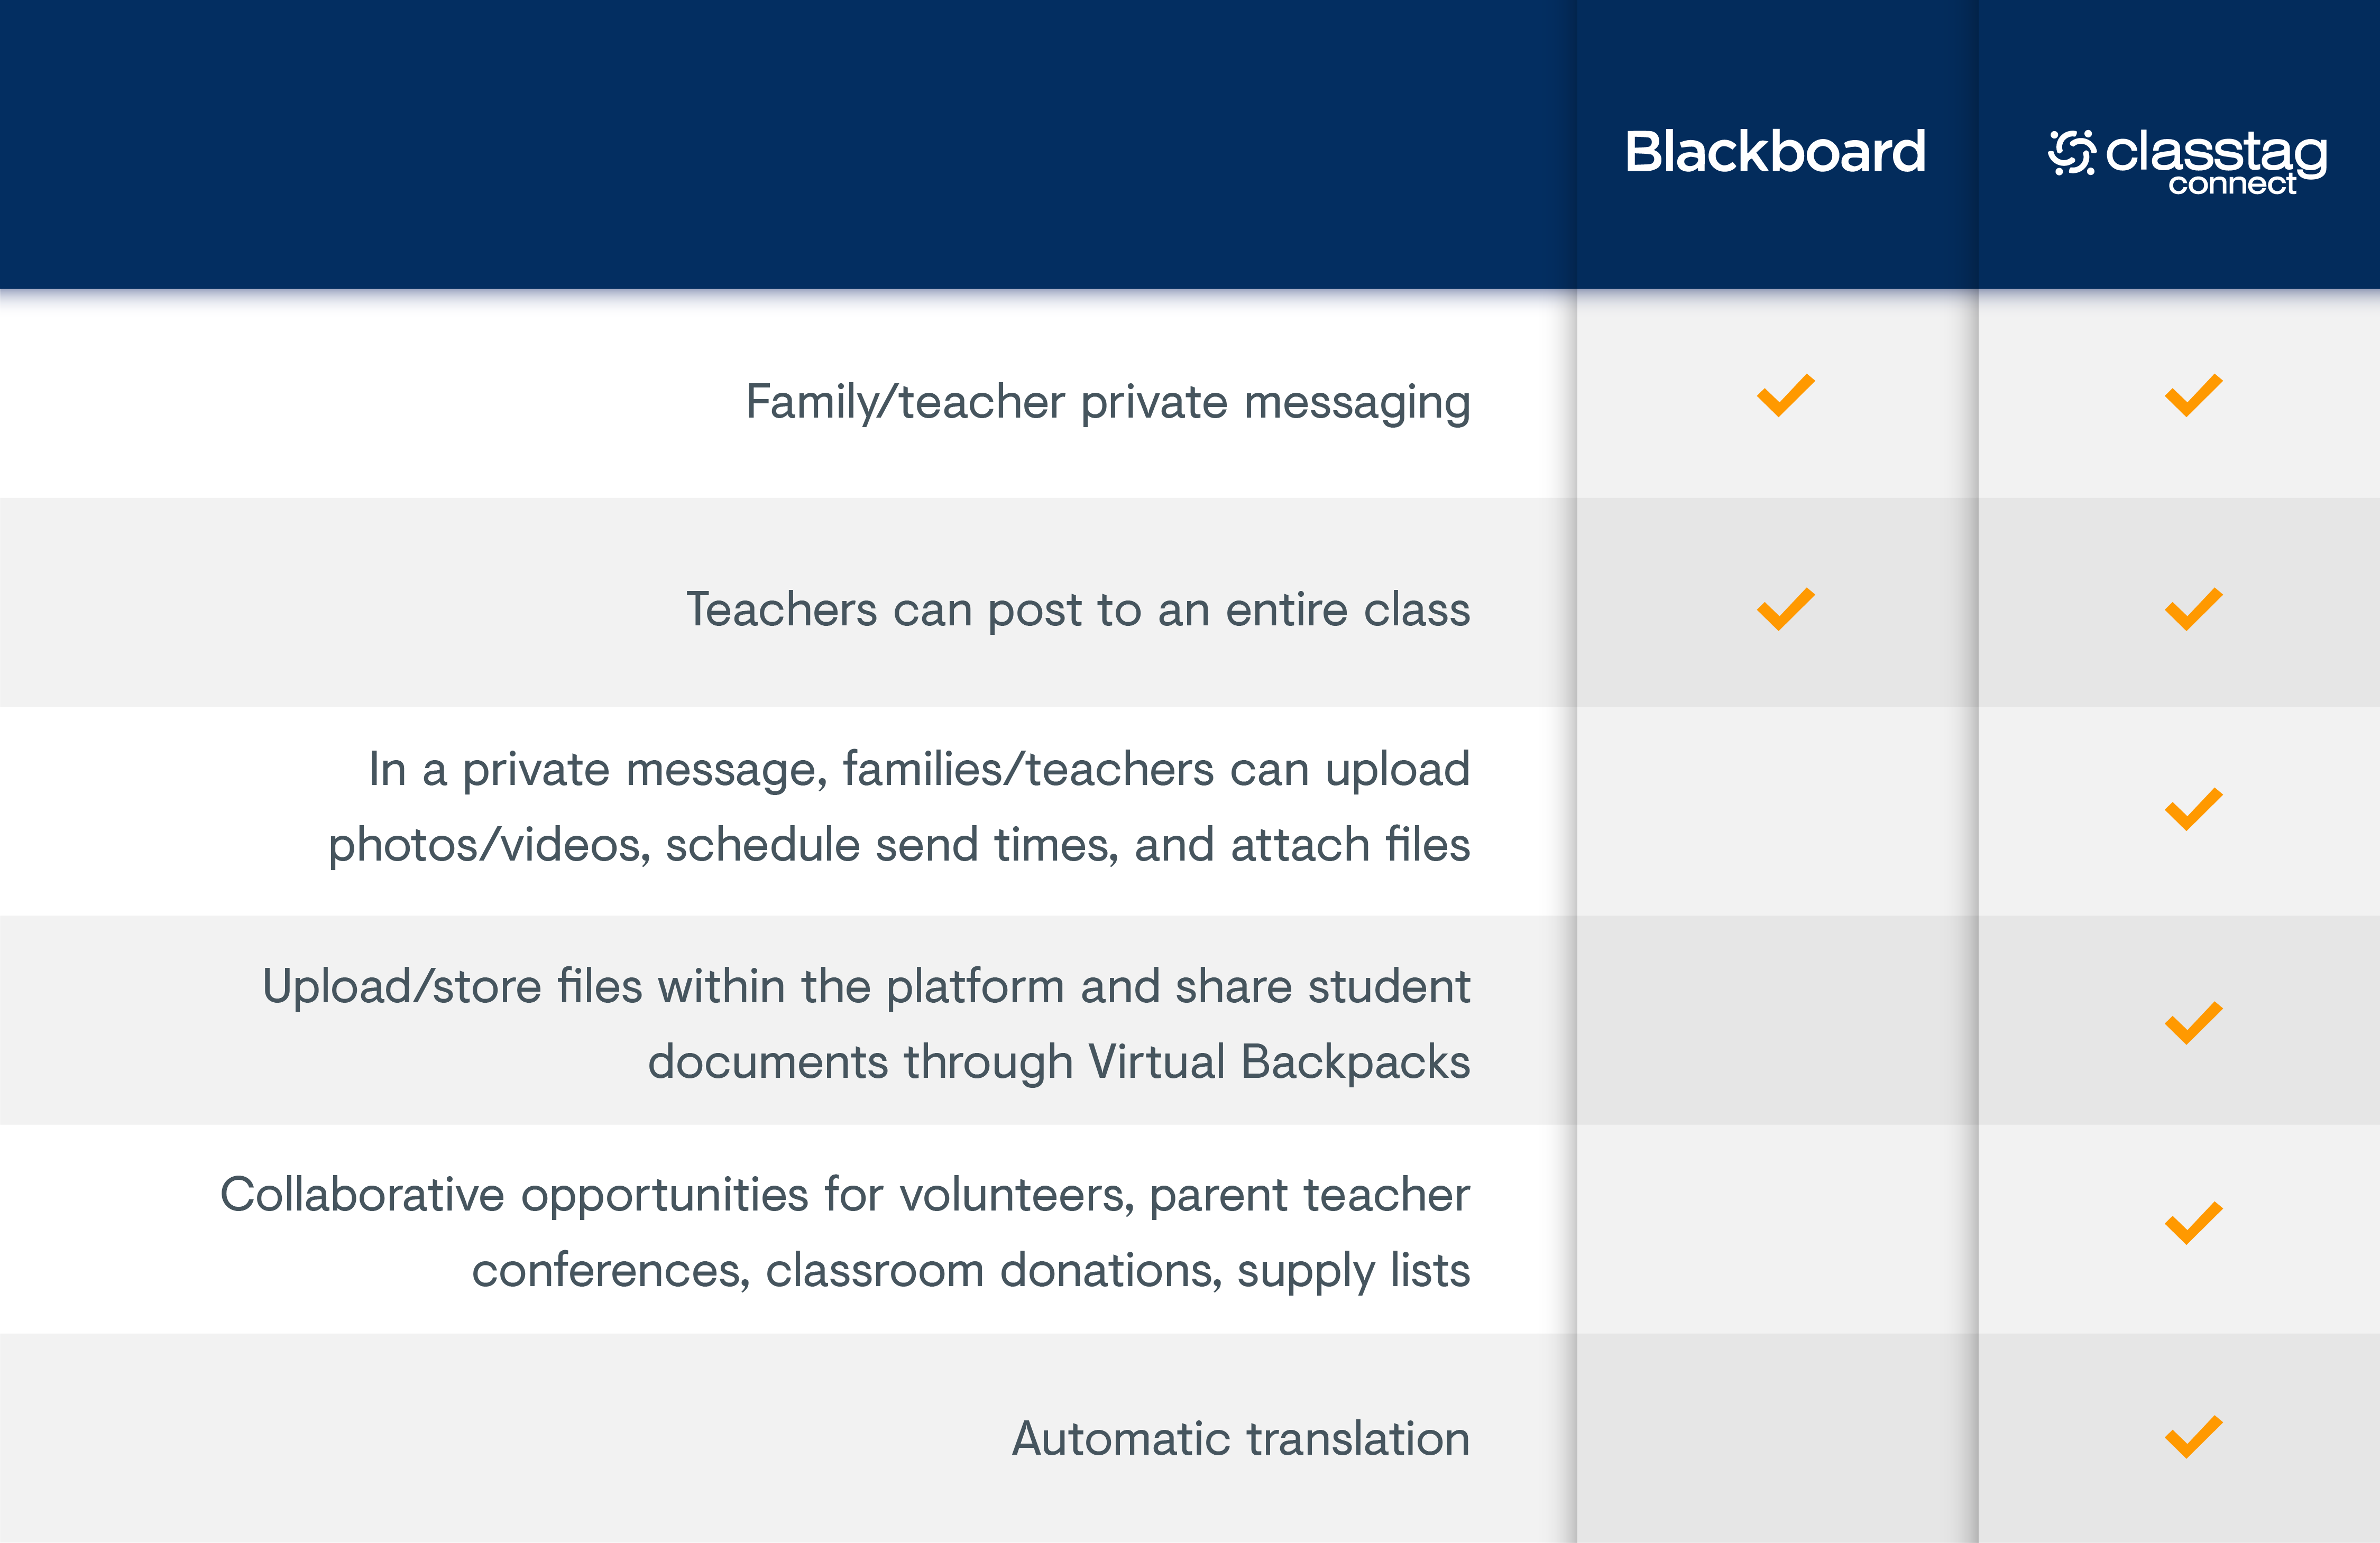 ClassTag Connect vs Blackboard two-way engagement